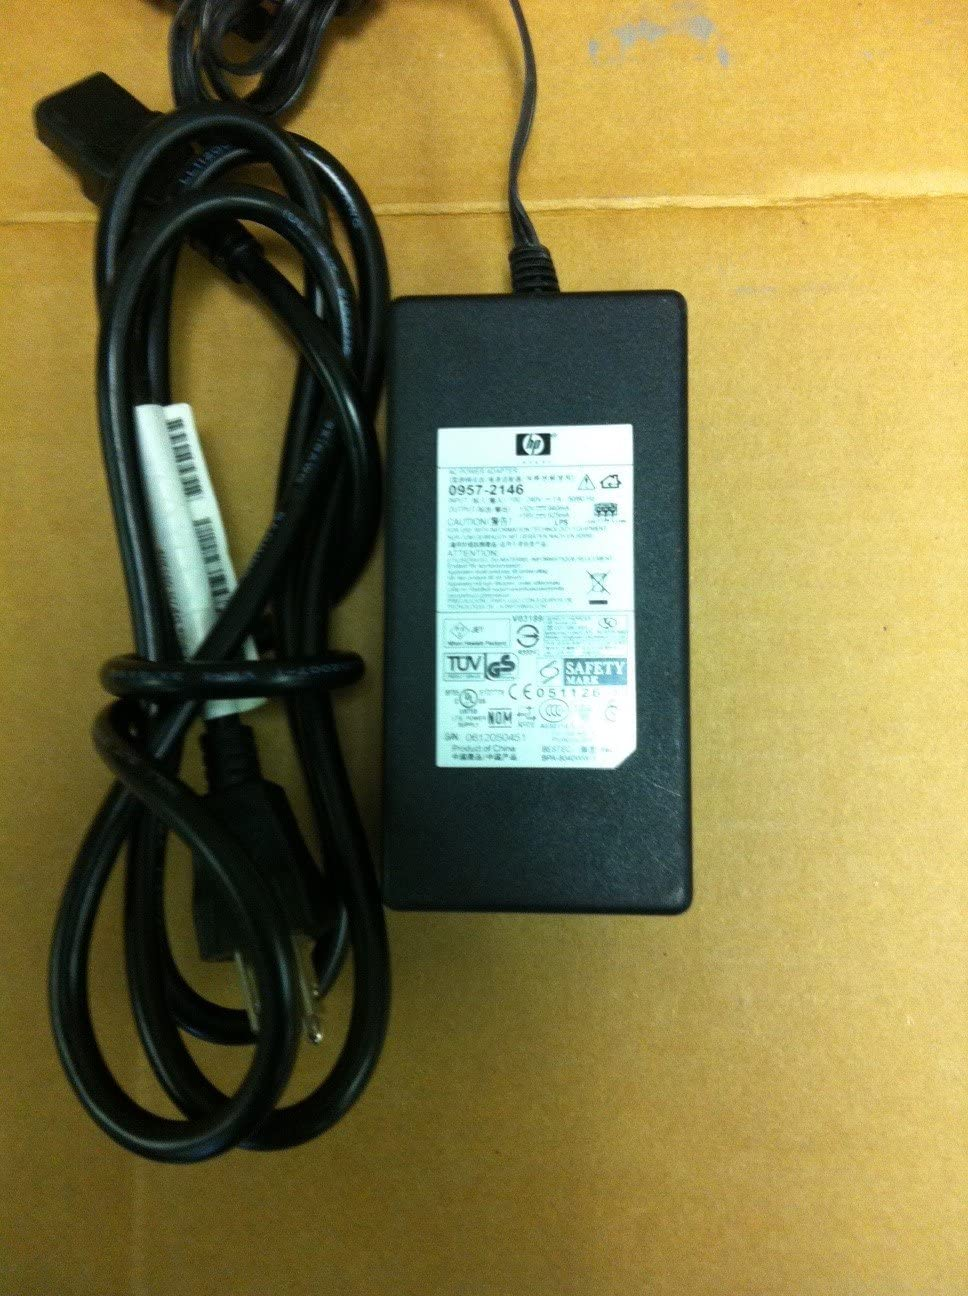 HP AC Power Adapter 0957-2146